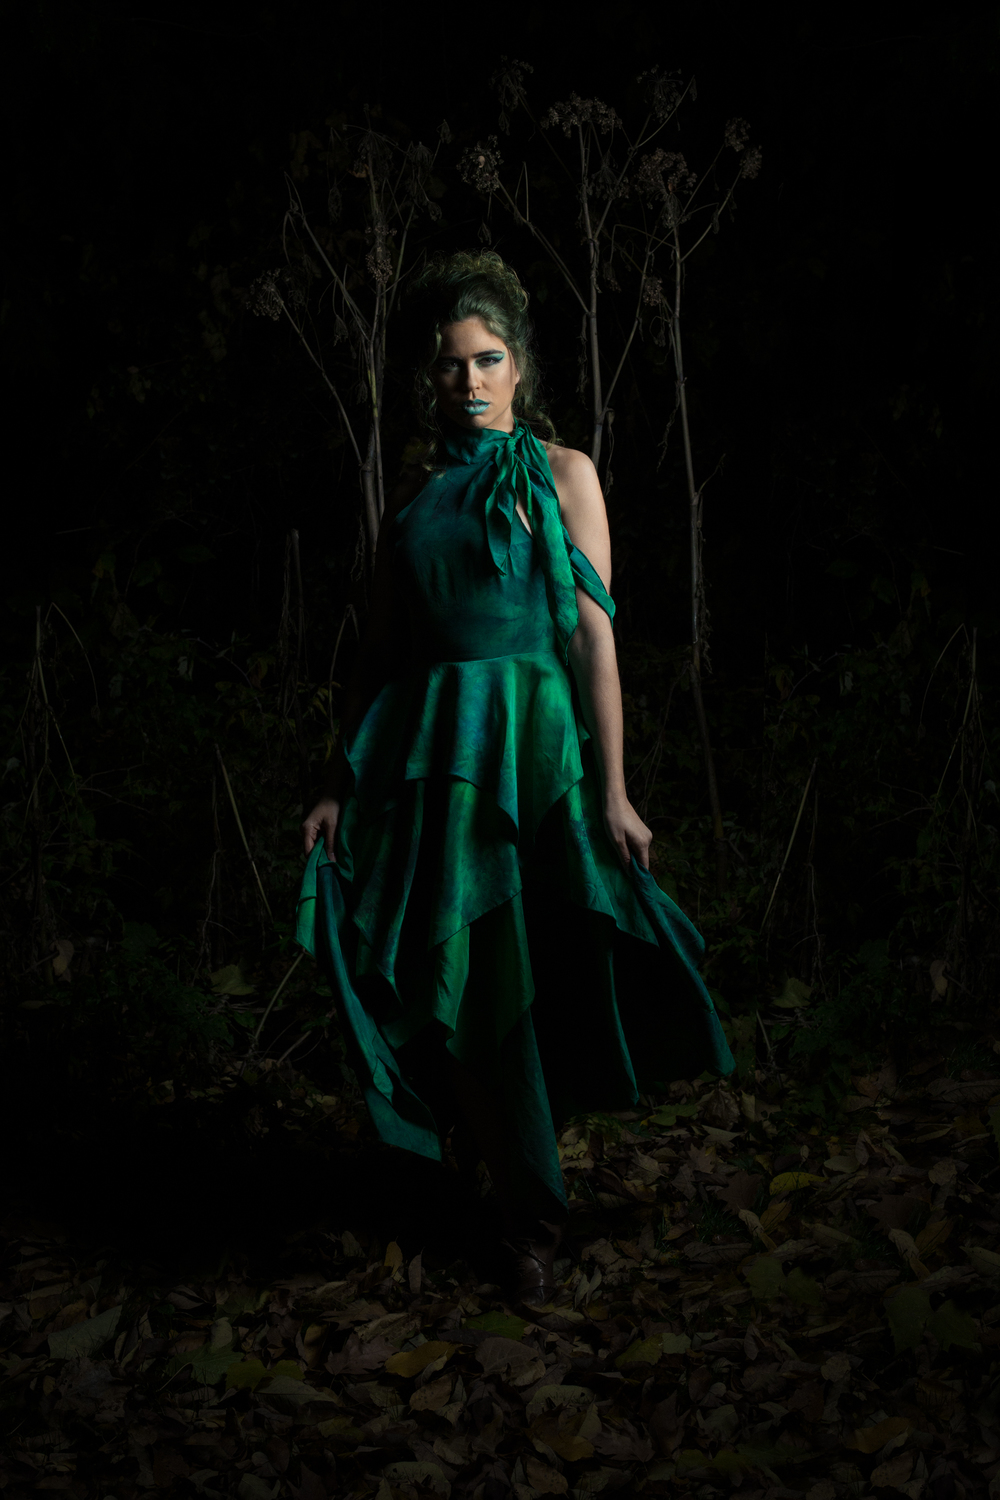 Photography: Lance Kenneth Blakney l Model: Sophie H-L l Hair: Mike Drost l MUA: Billy Peterson l Fashion Design: Michelle Duncan Surface Design/Producer: Dee Wilkie